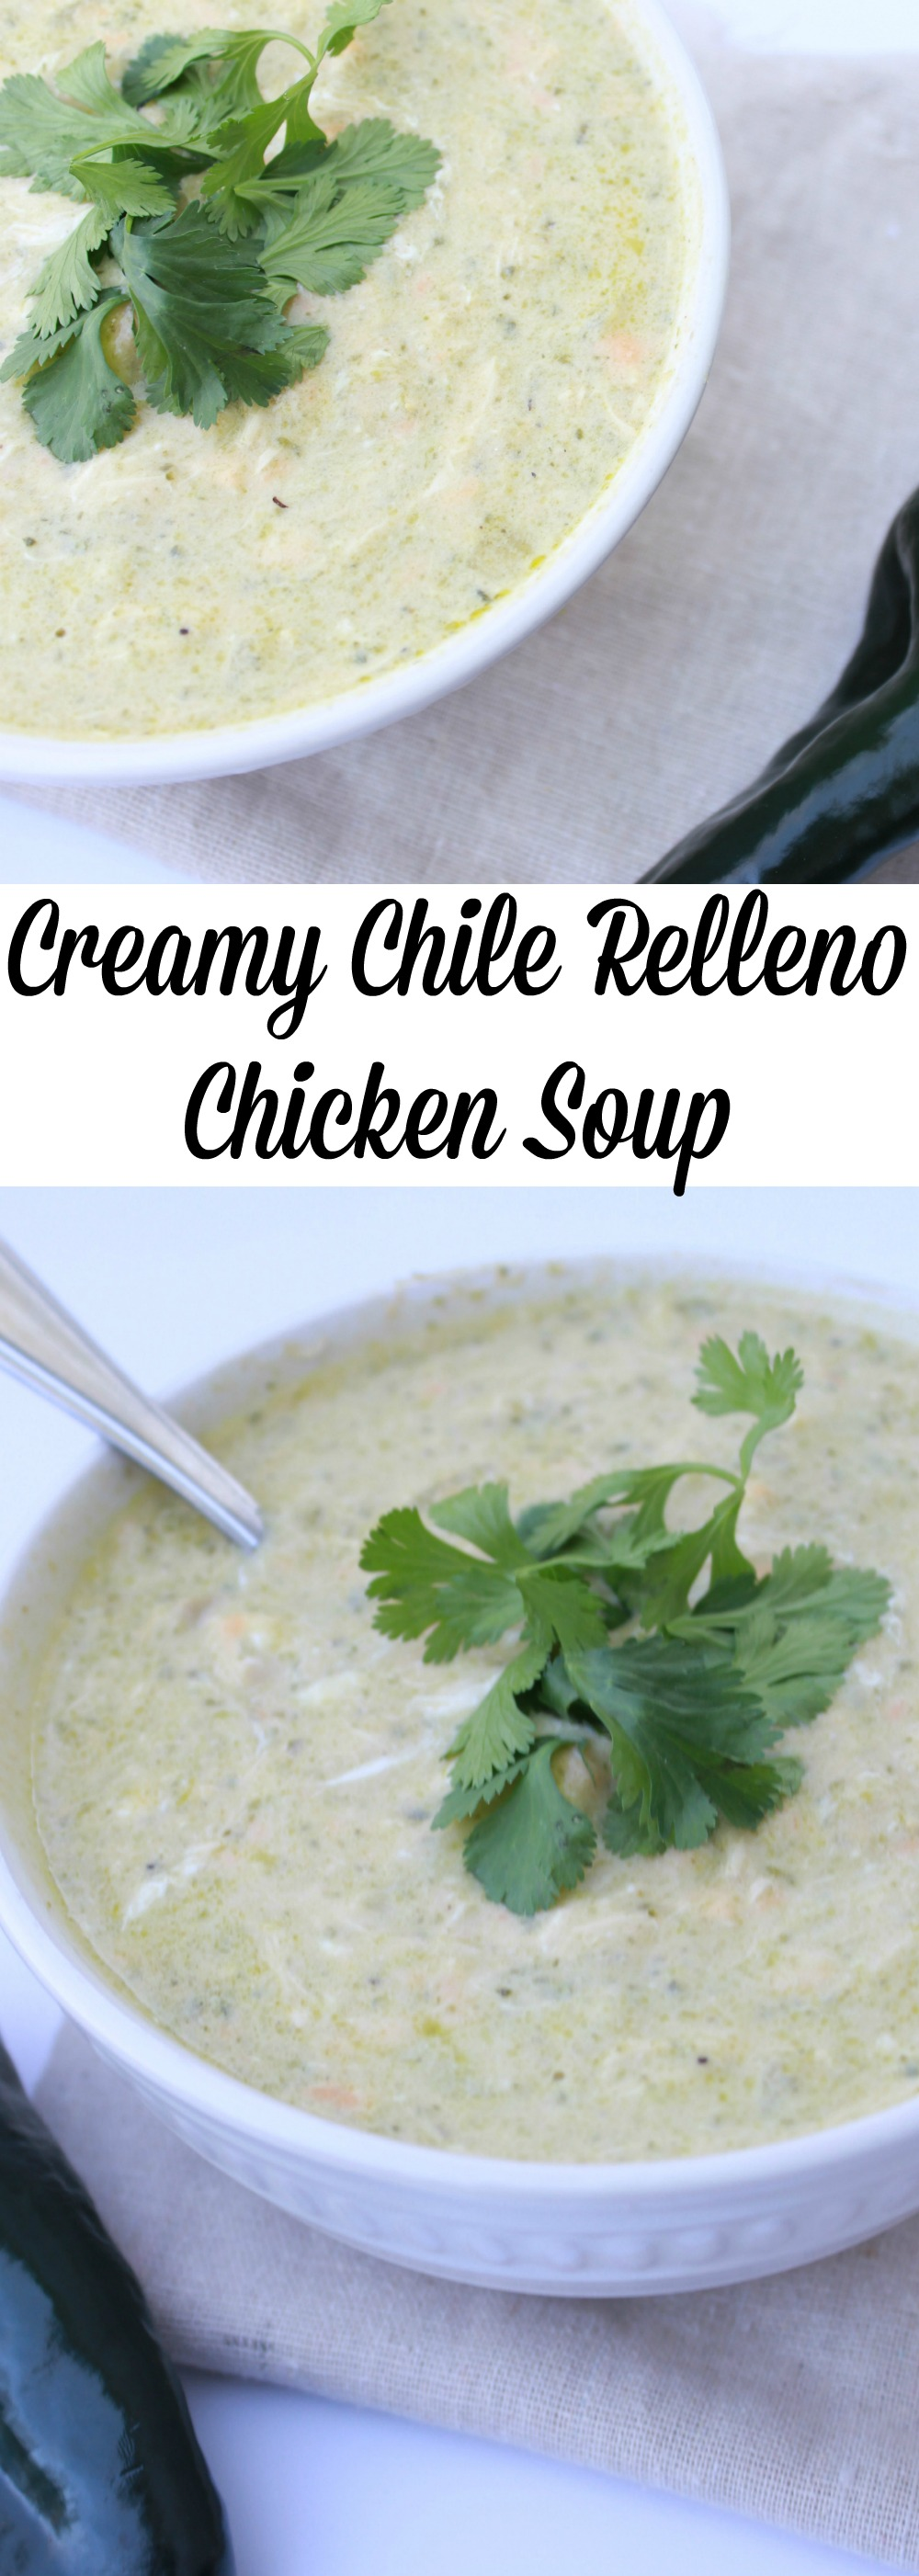 Creamy Chile Relleno Chicken Soup